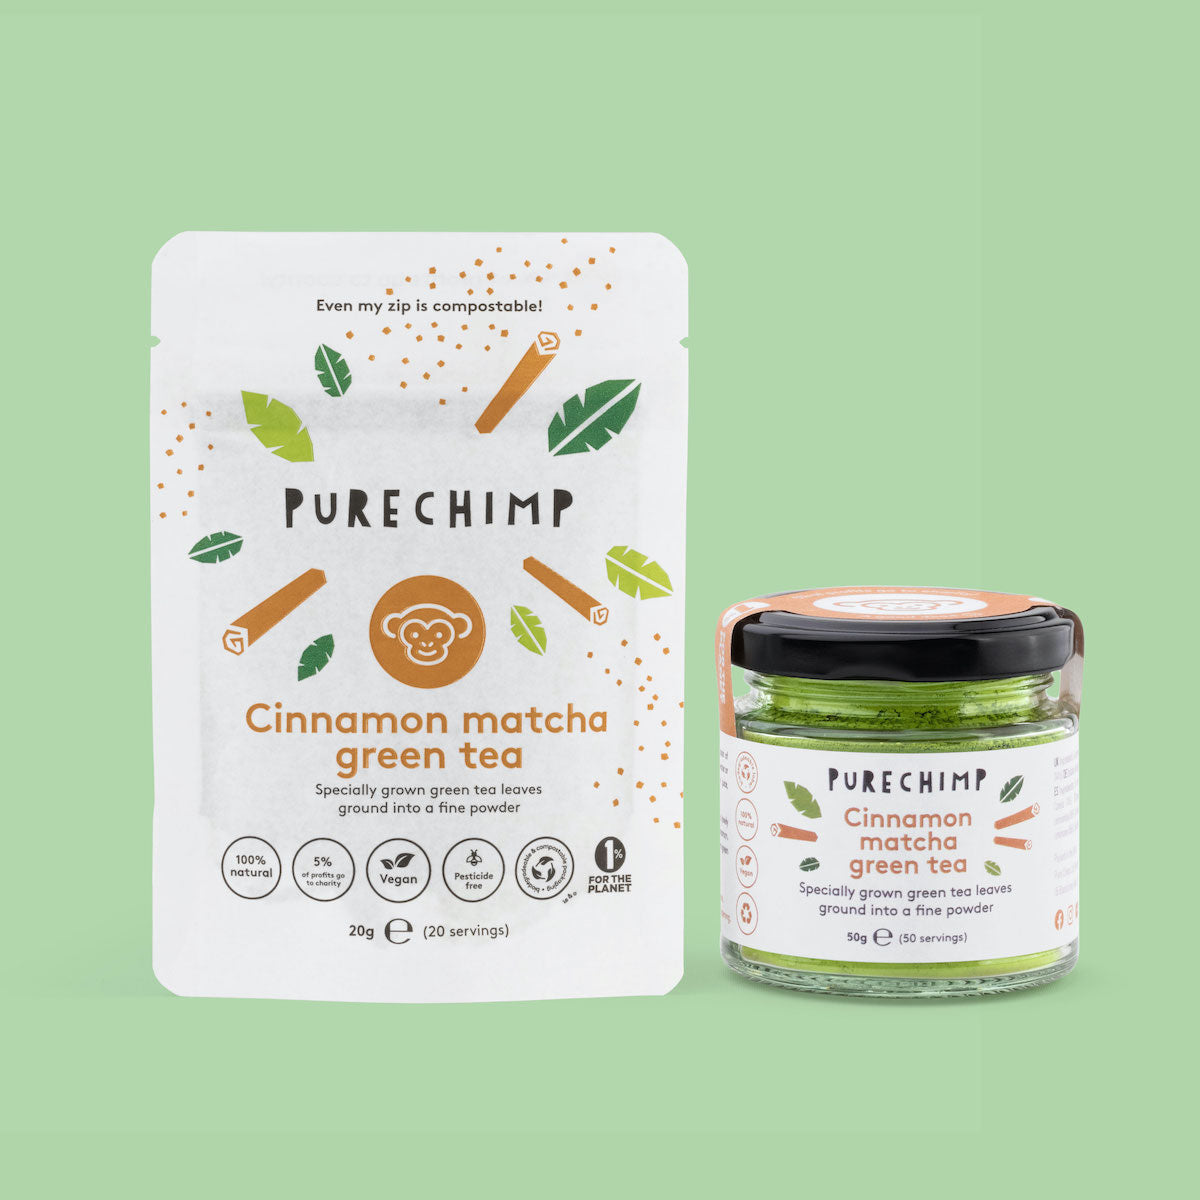 cinnamon matcha green tea in recyclable packaging